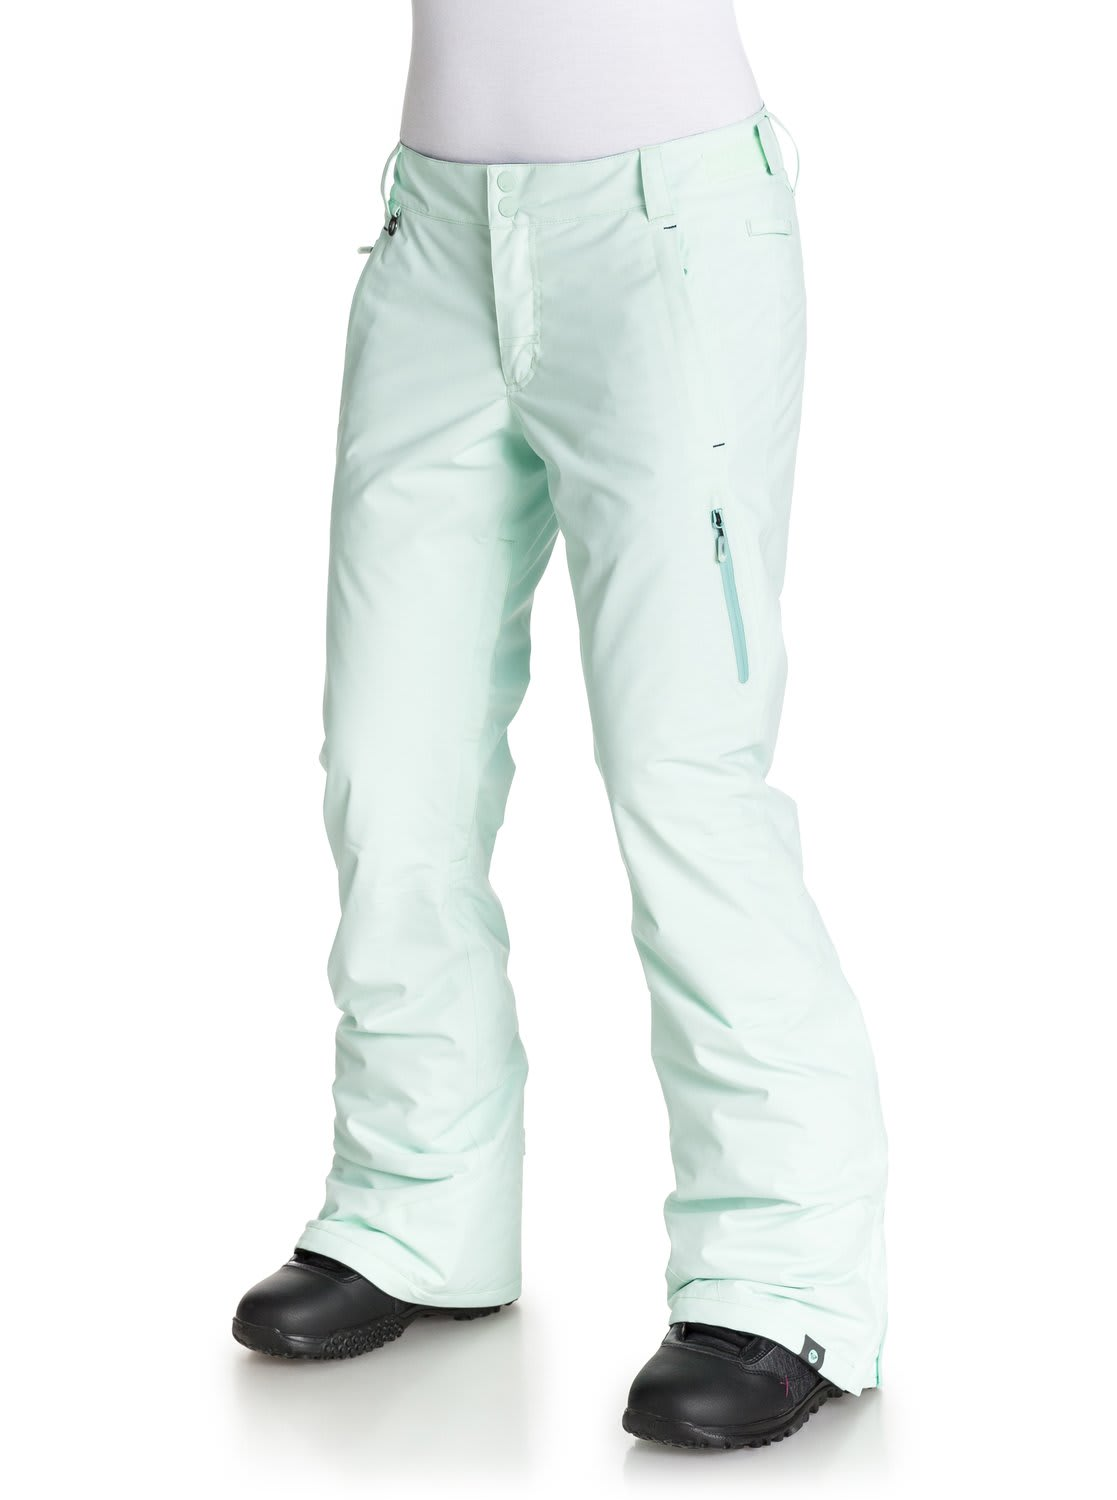 on sale roxy rushmore 2l gore tex snowboard pants womens up to